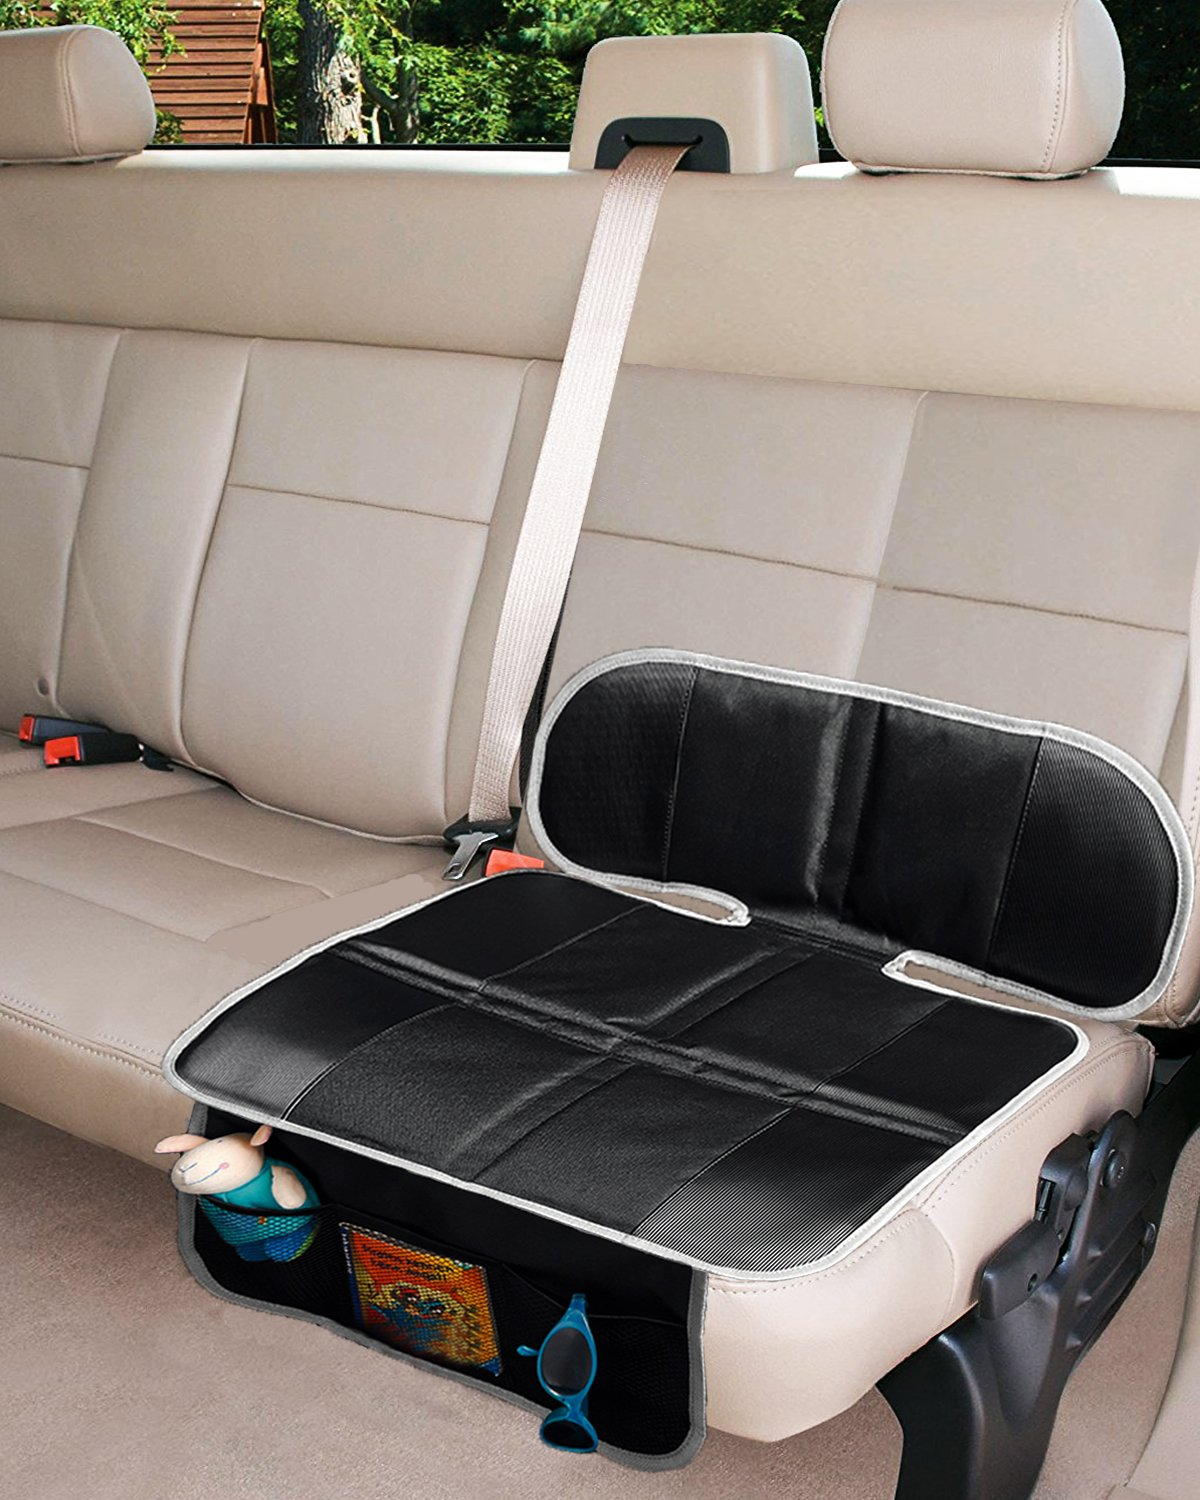 Car Seat Protector, Thick Padding Protection for Child & Baby Cars Seats, Dog Mat, Non Slip and Waterproof Protects Automotive Vehicle Upholstery with Extra Storage Pocket(Black)